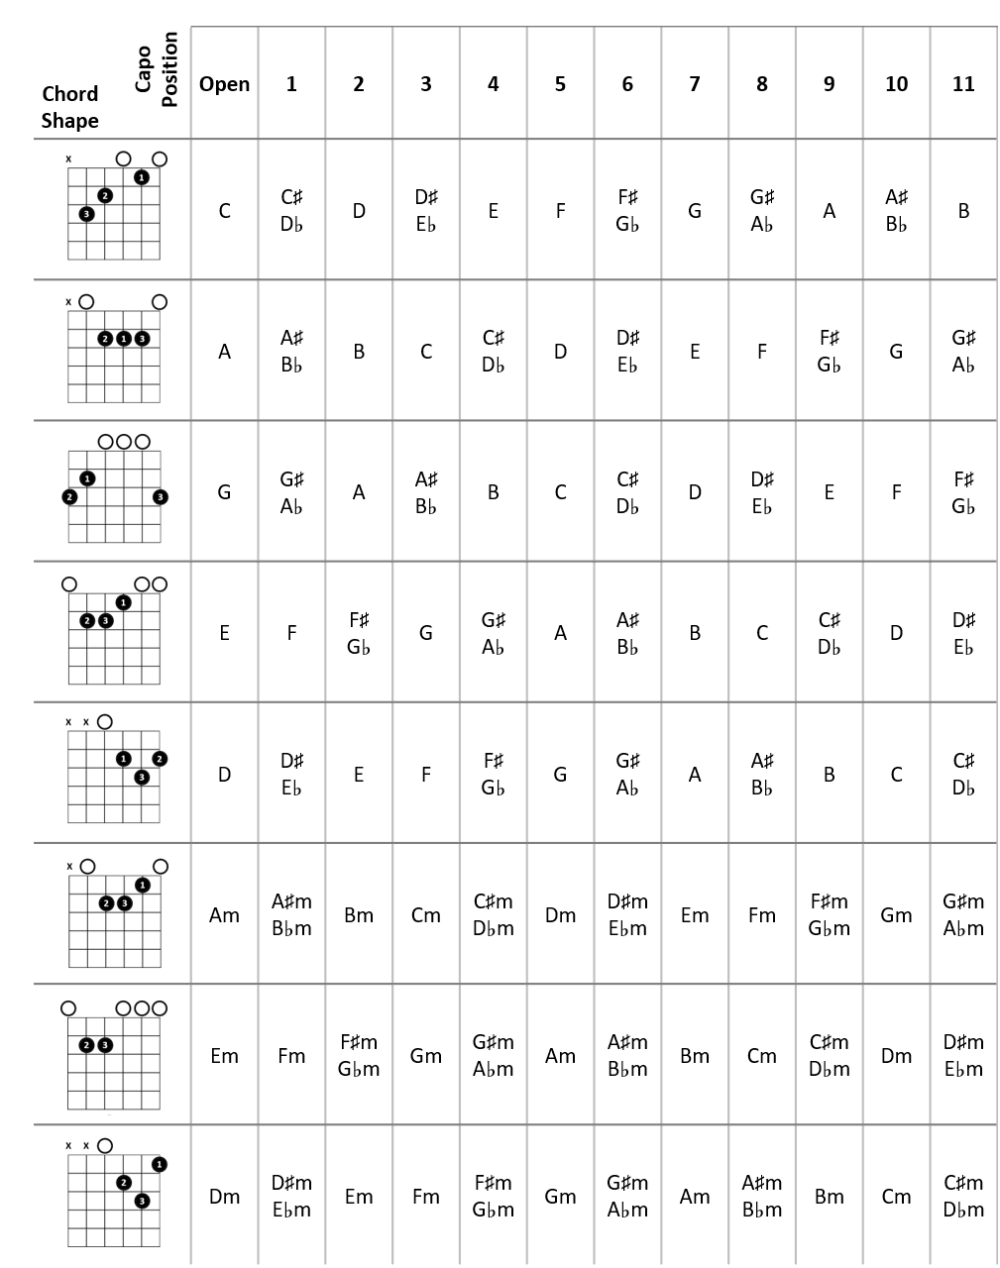 medium resolution of caged chord capo positions